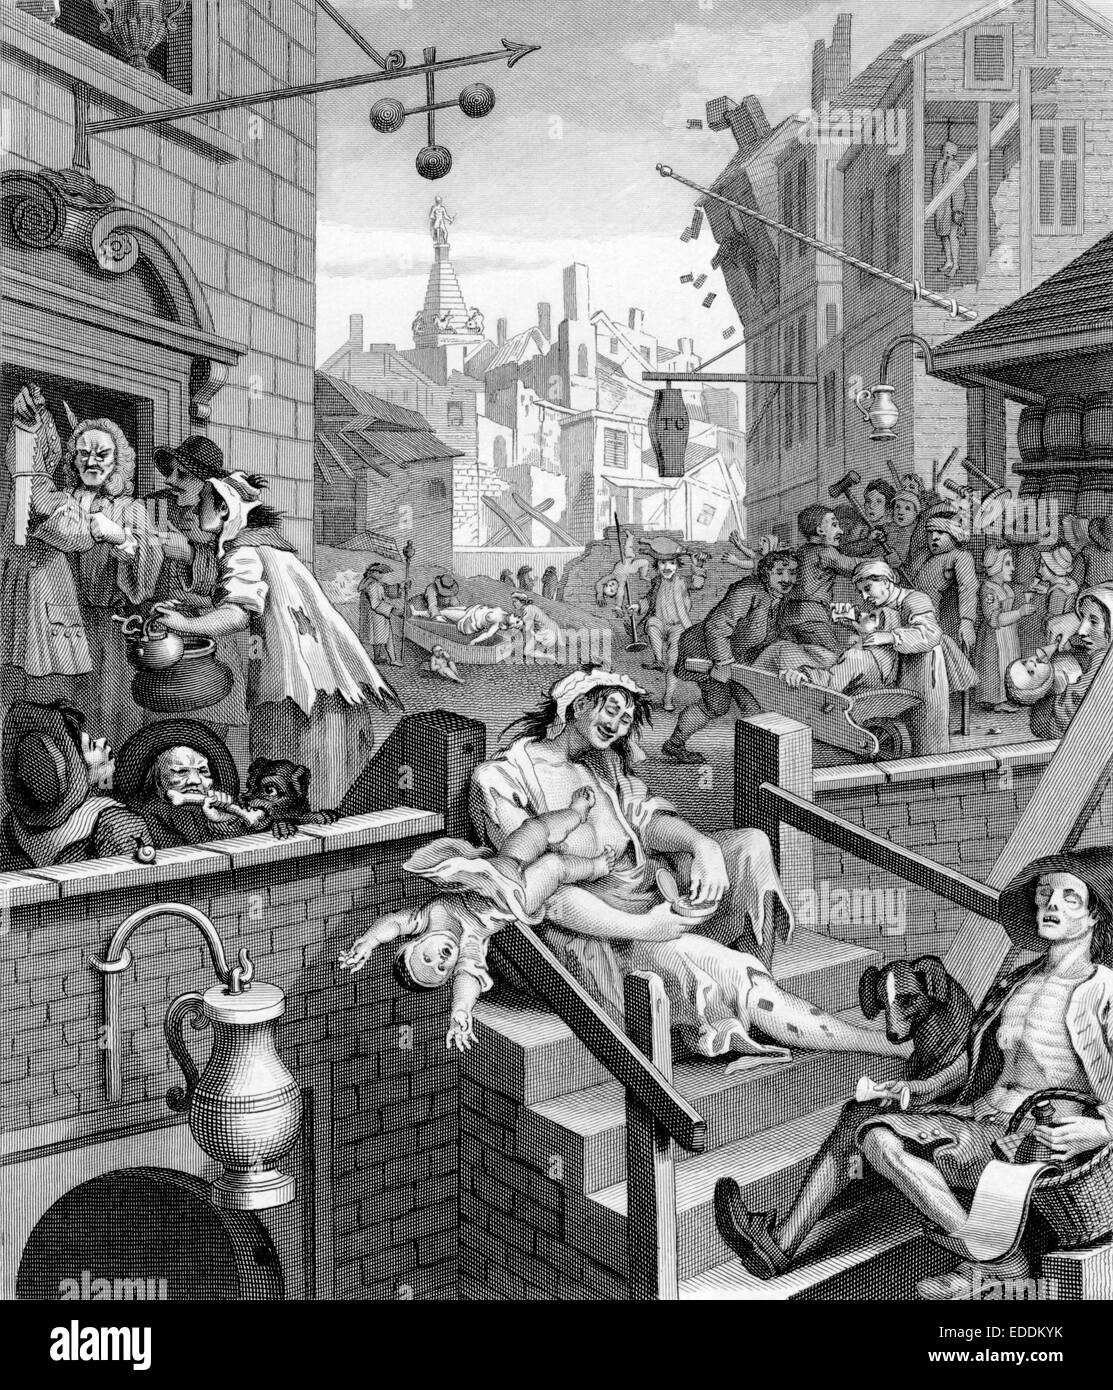 Beer Street and Gin Lane are two prints issued in 1751 by English artist  William Hogarth 1697-1764 in support of what would become the Gin Act